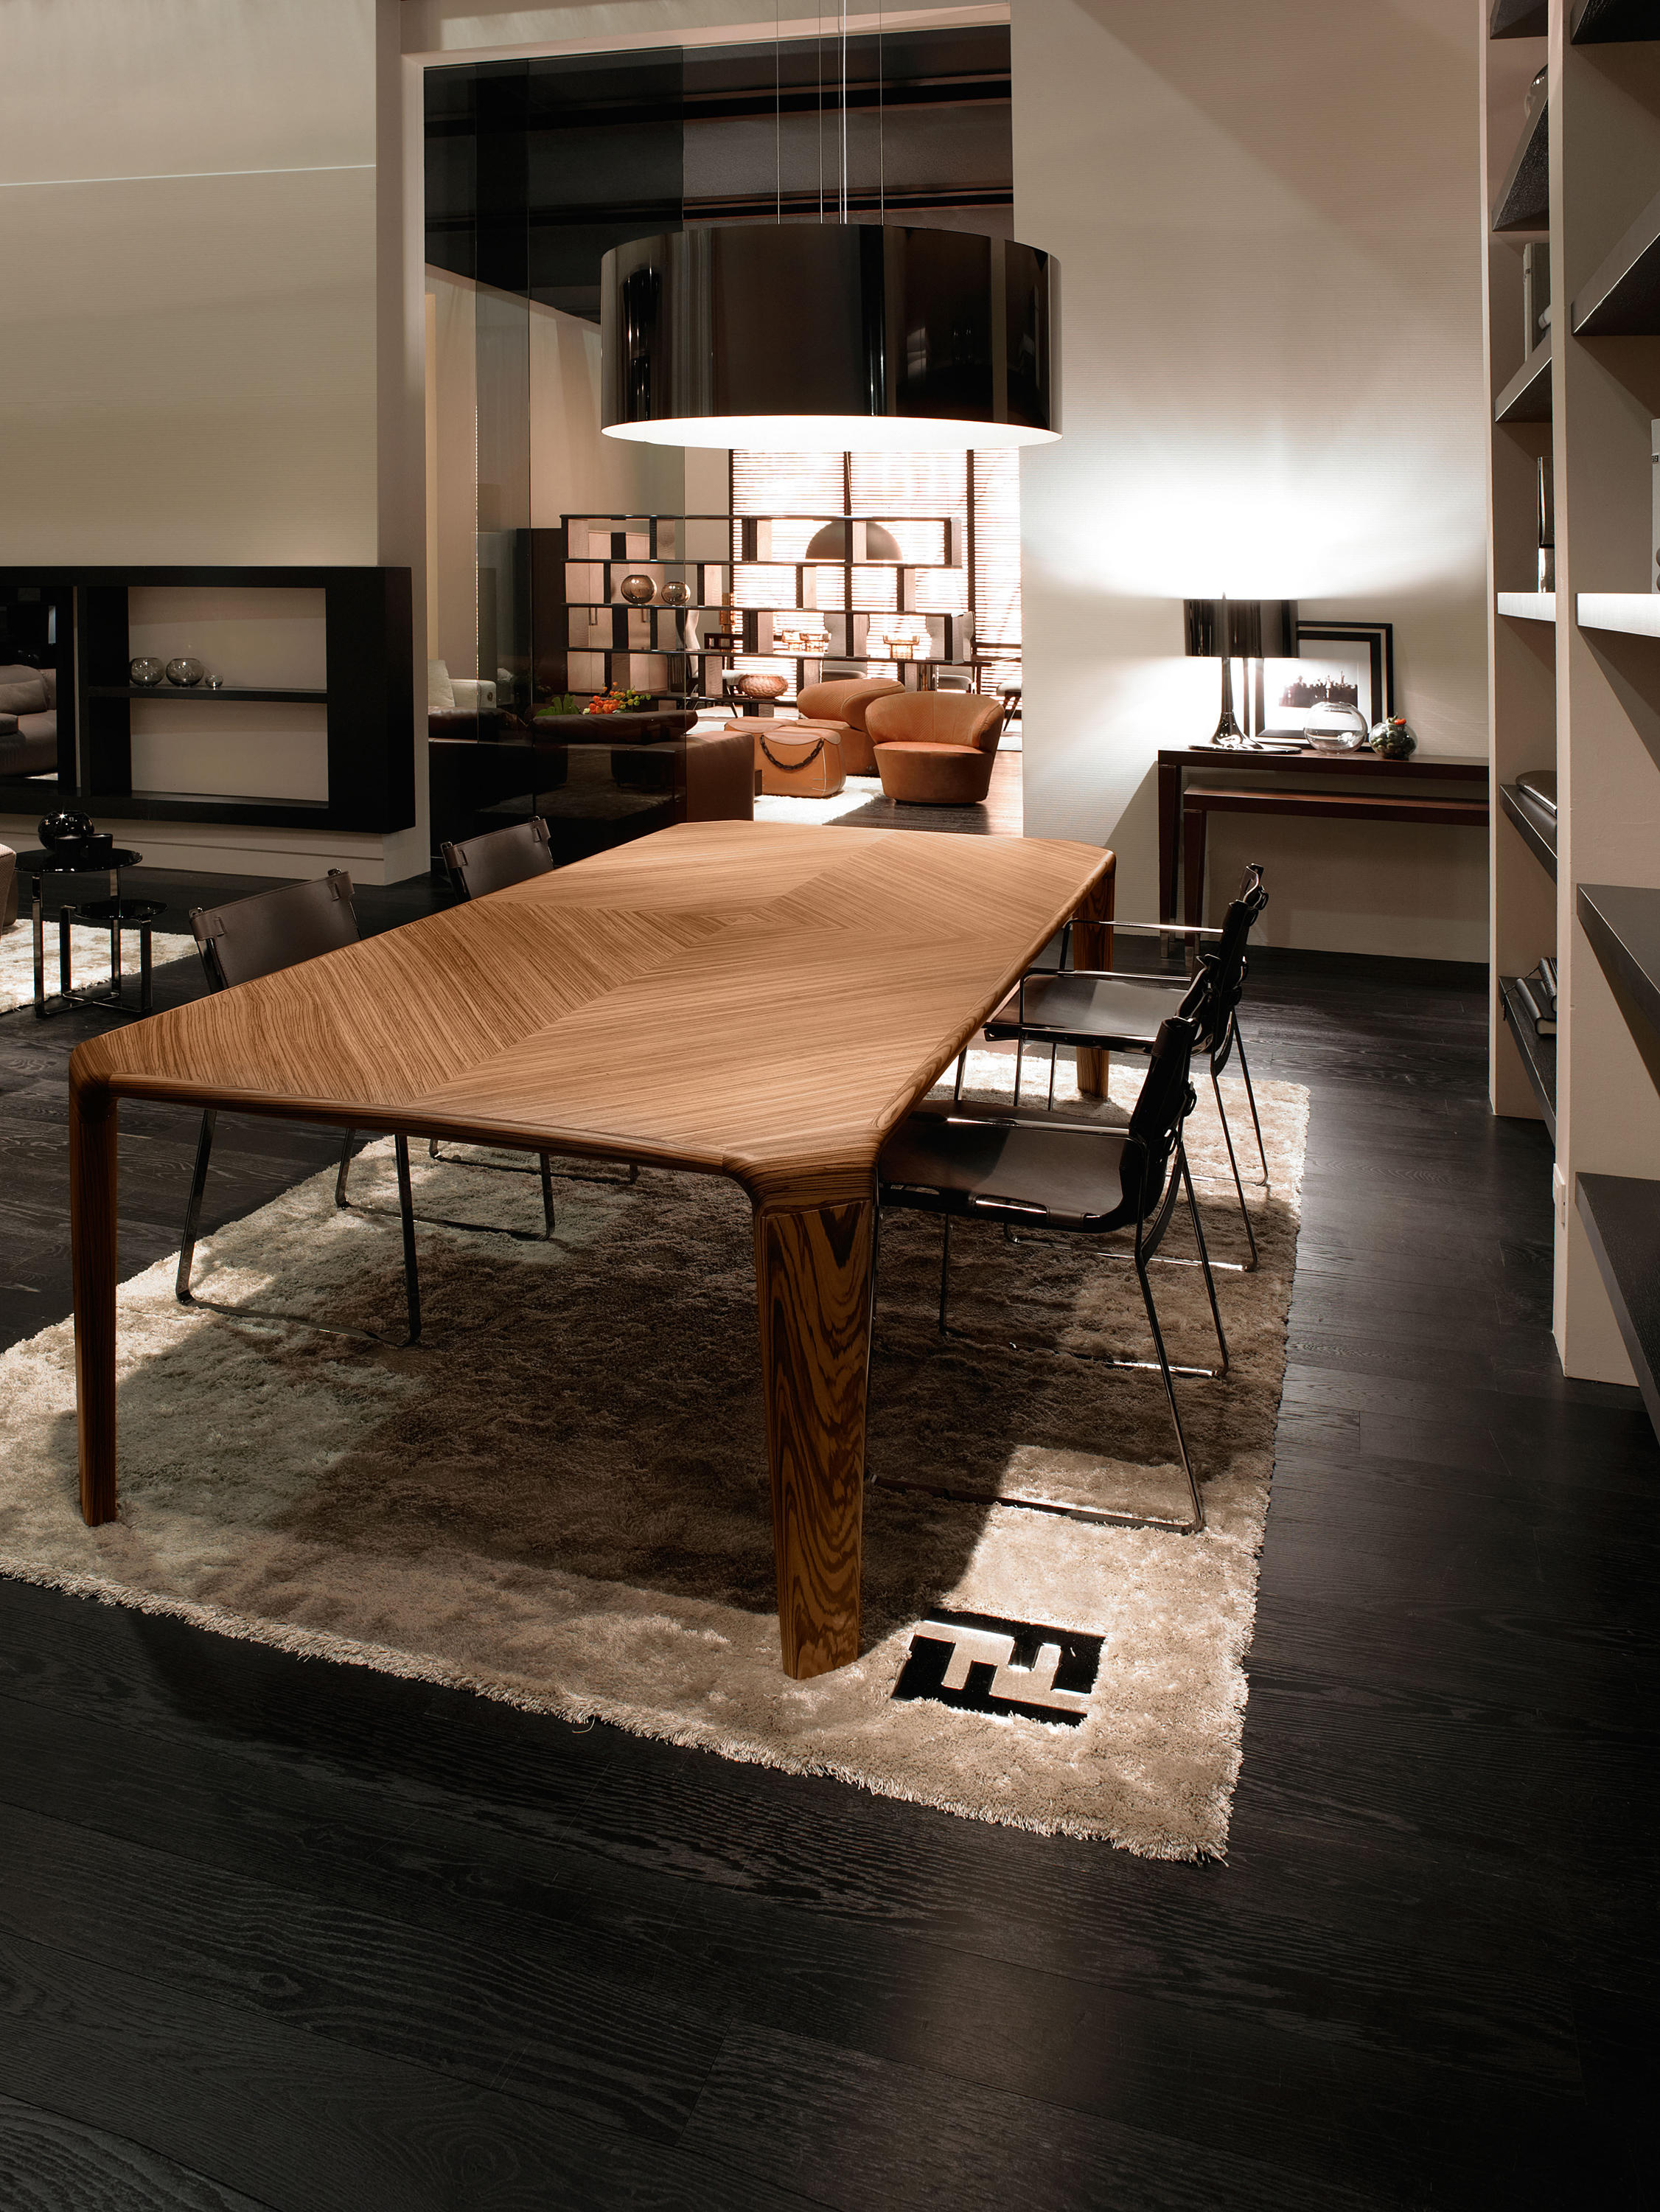 Serengeti Table Dining Tables From Fendi Casa Architonic